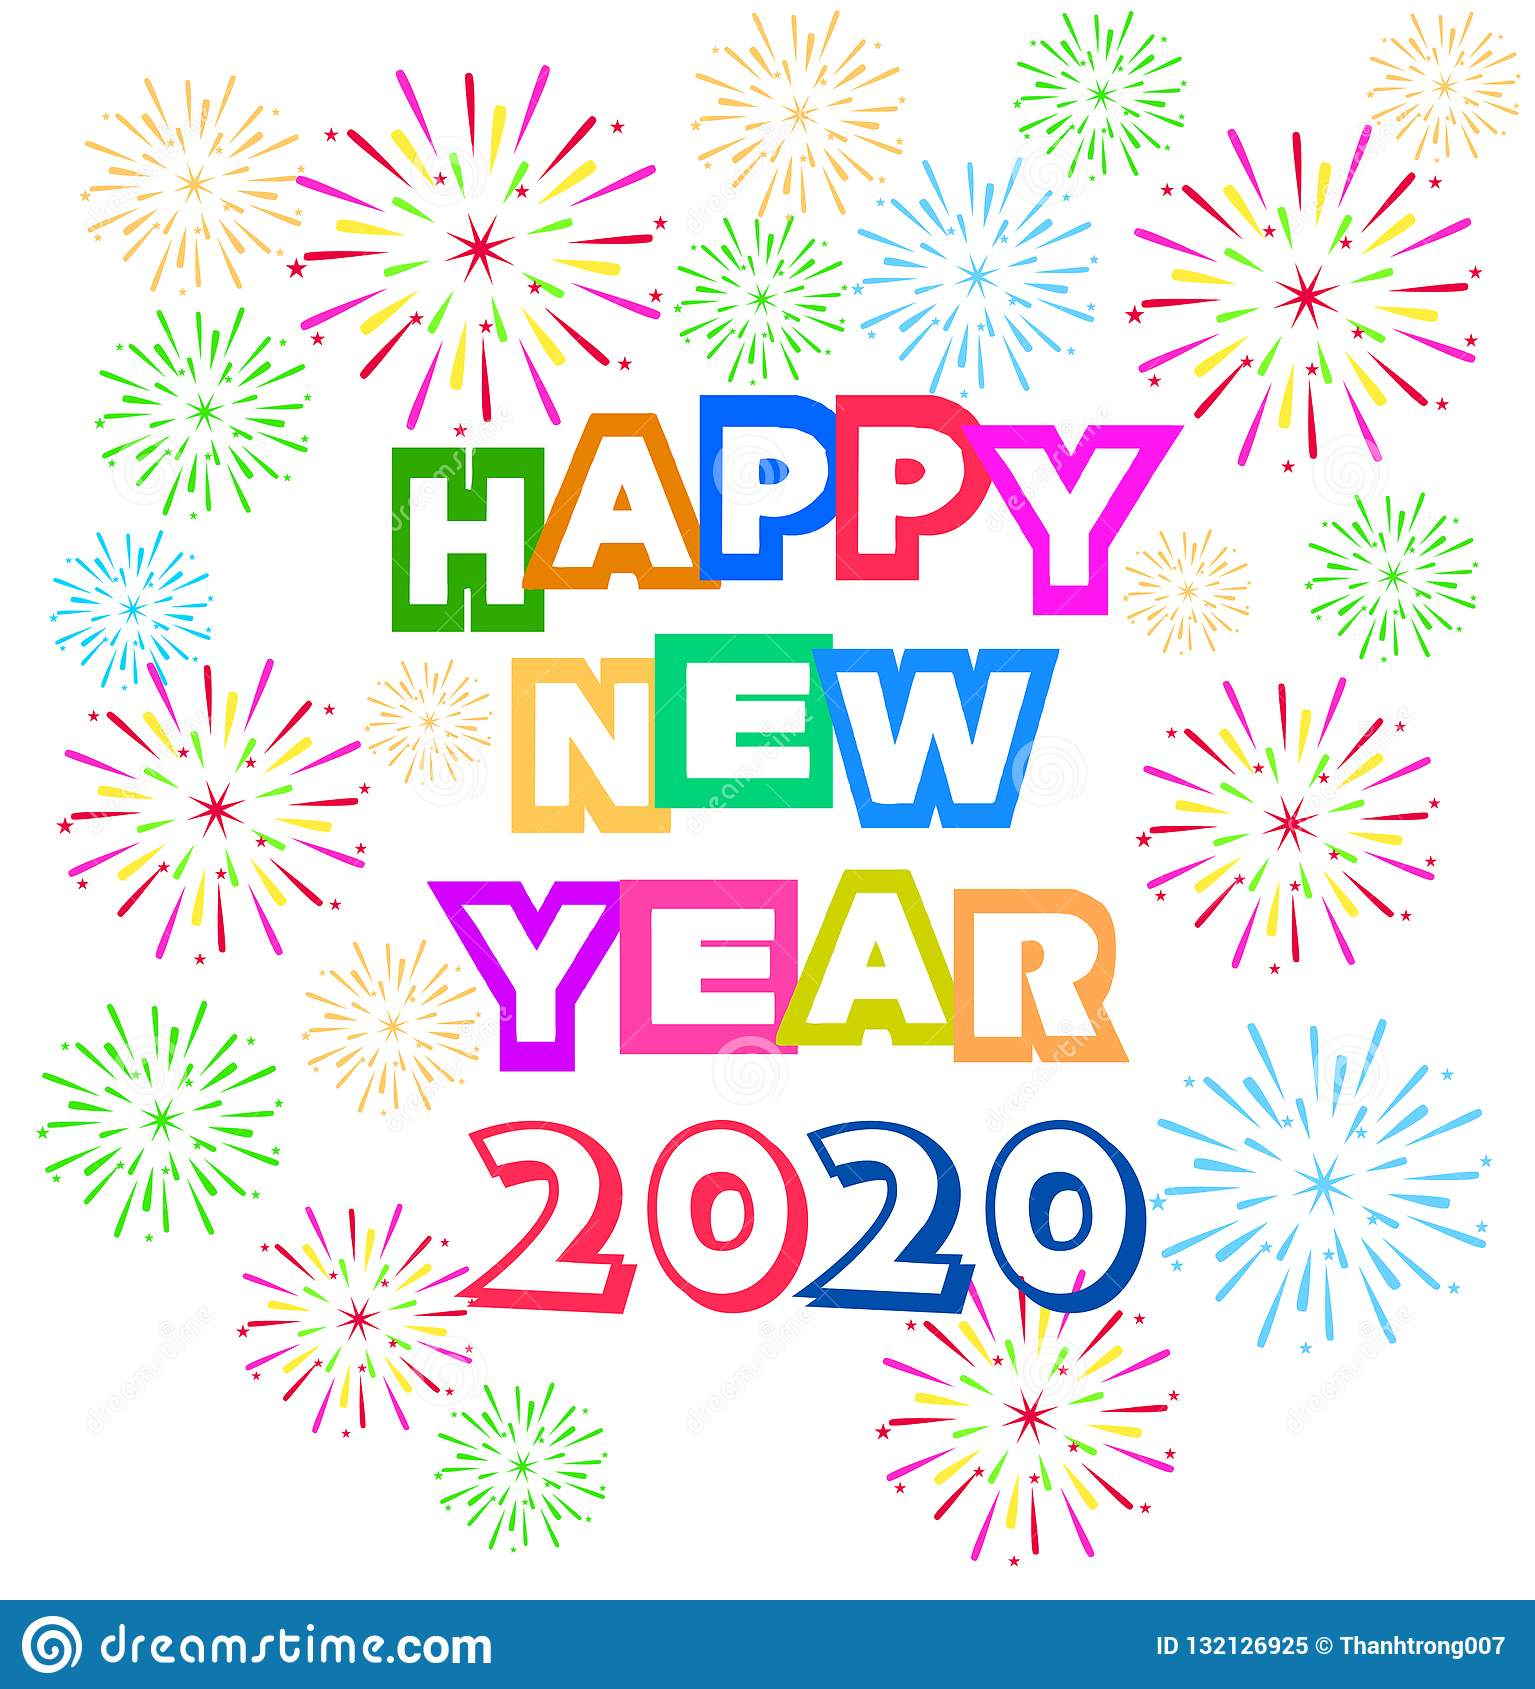 Happy New Year Clipart 2020.Happy New Year 2020 Background With Fireworks Stock Vector